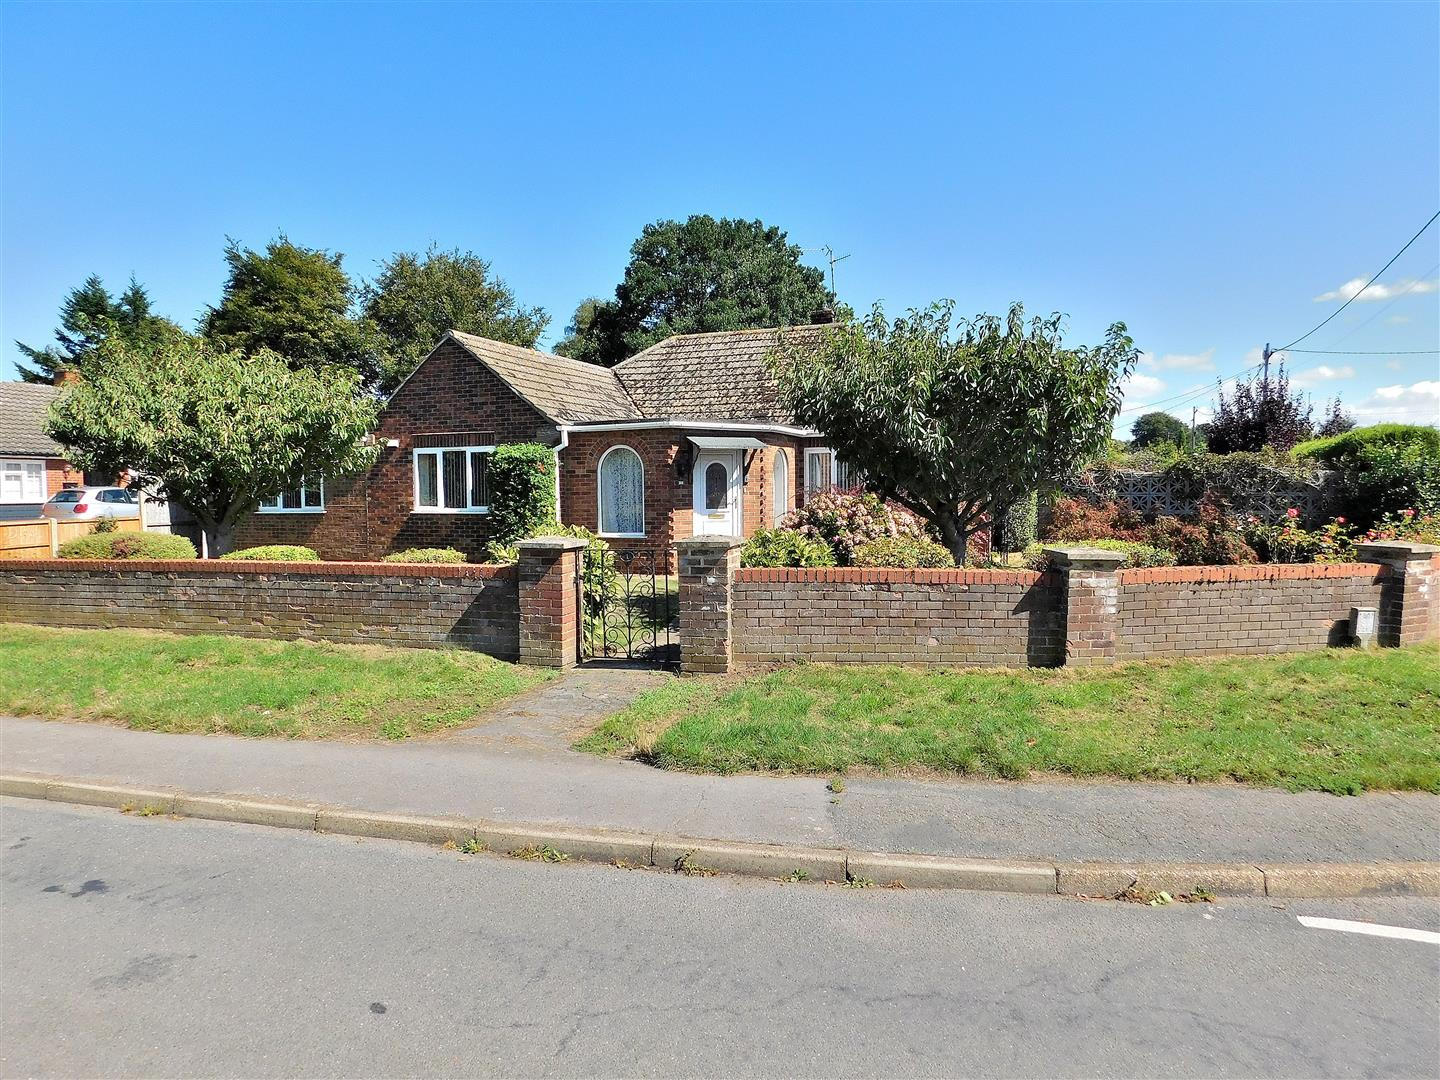 3 bed detached bungalow for sale in King's Lynn, PE31 6JR, PE31